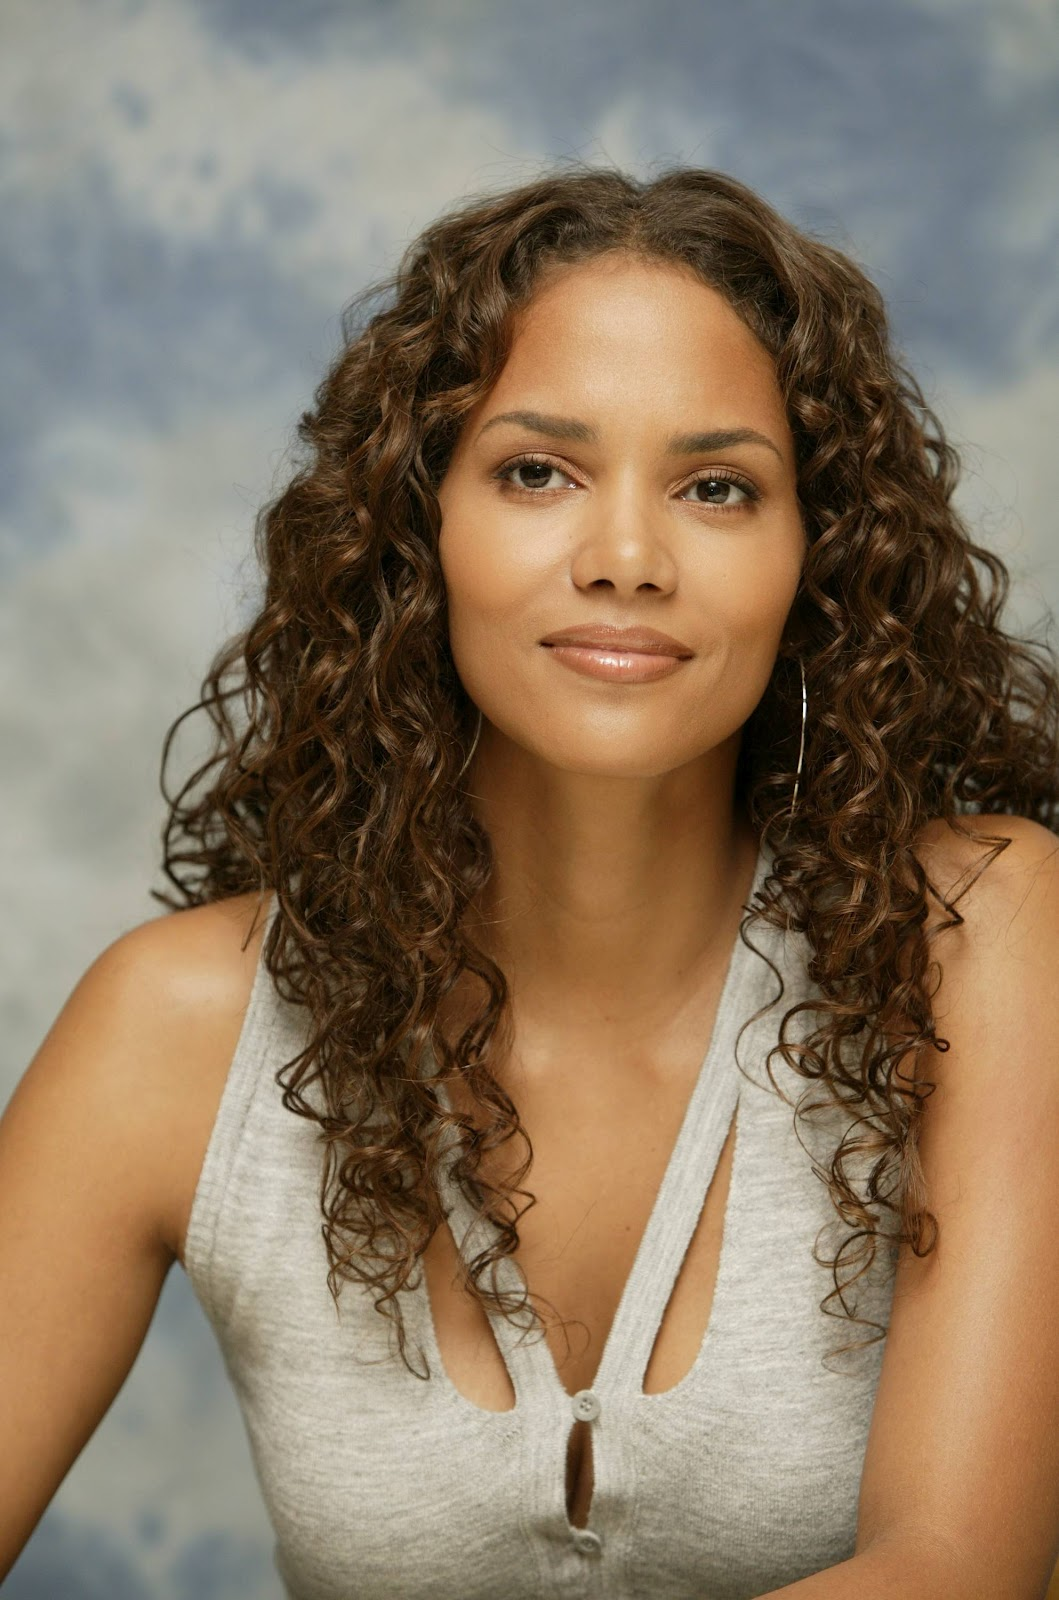 Halle Berry Different Hairstyles 2012 Lifestyles 717